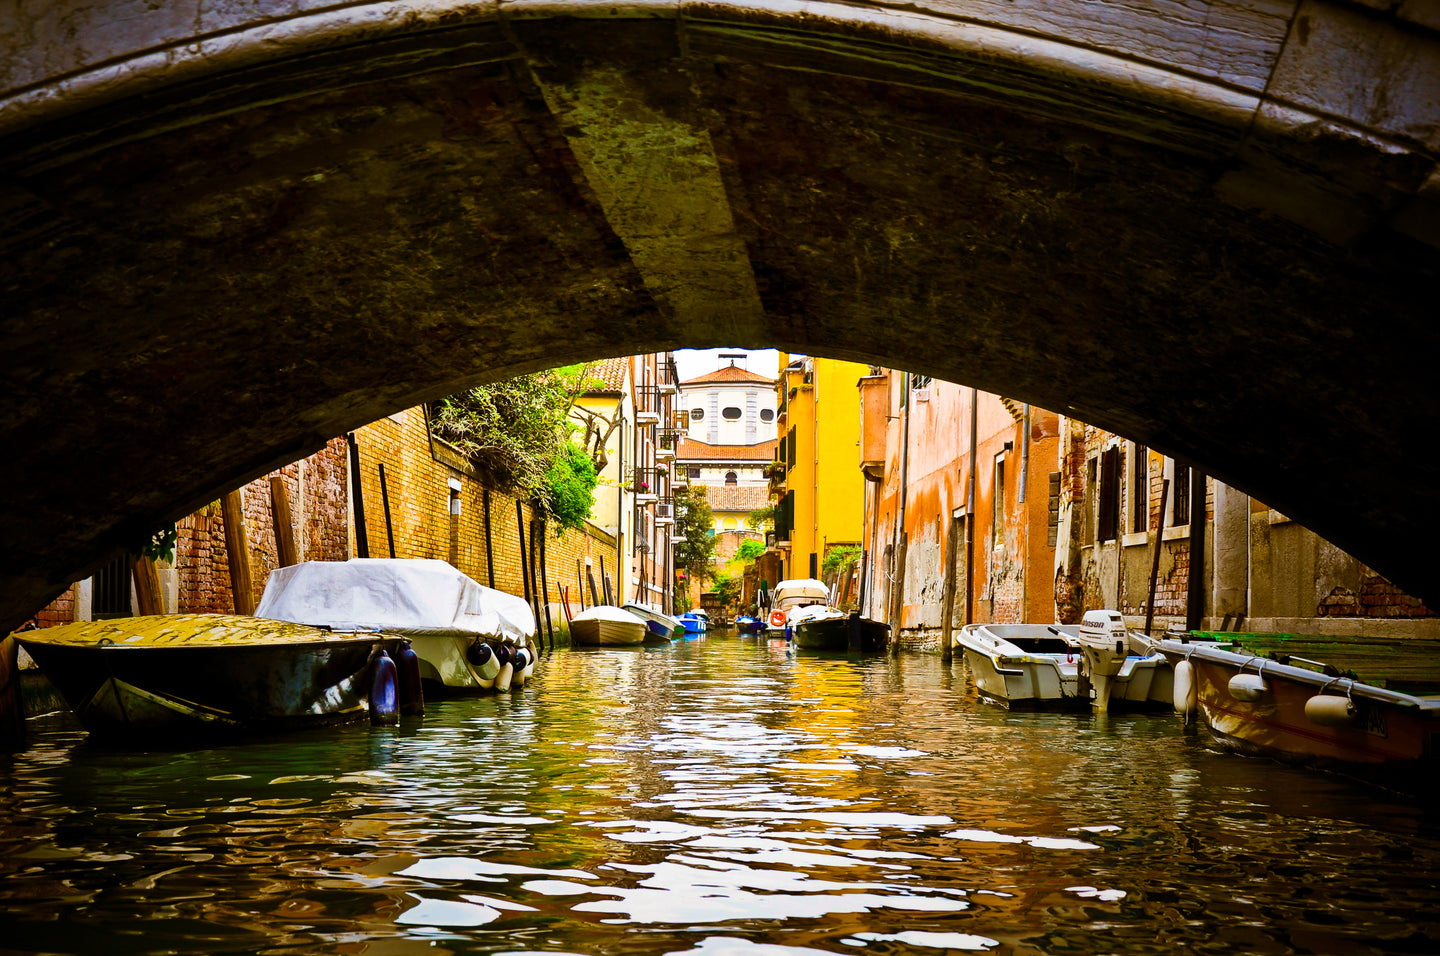 Venice bridges 4 - Tracy McCrackin Photography